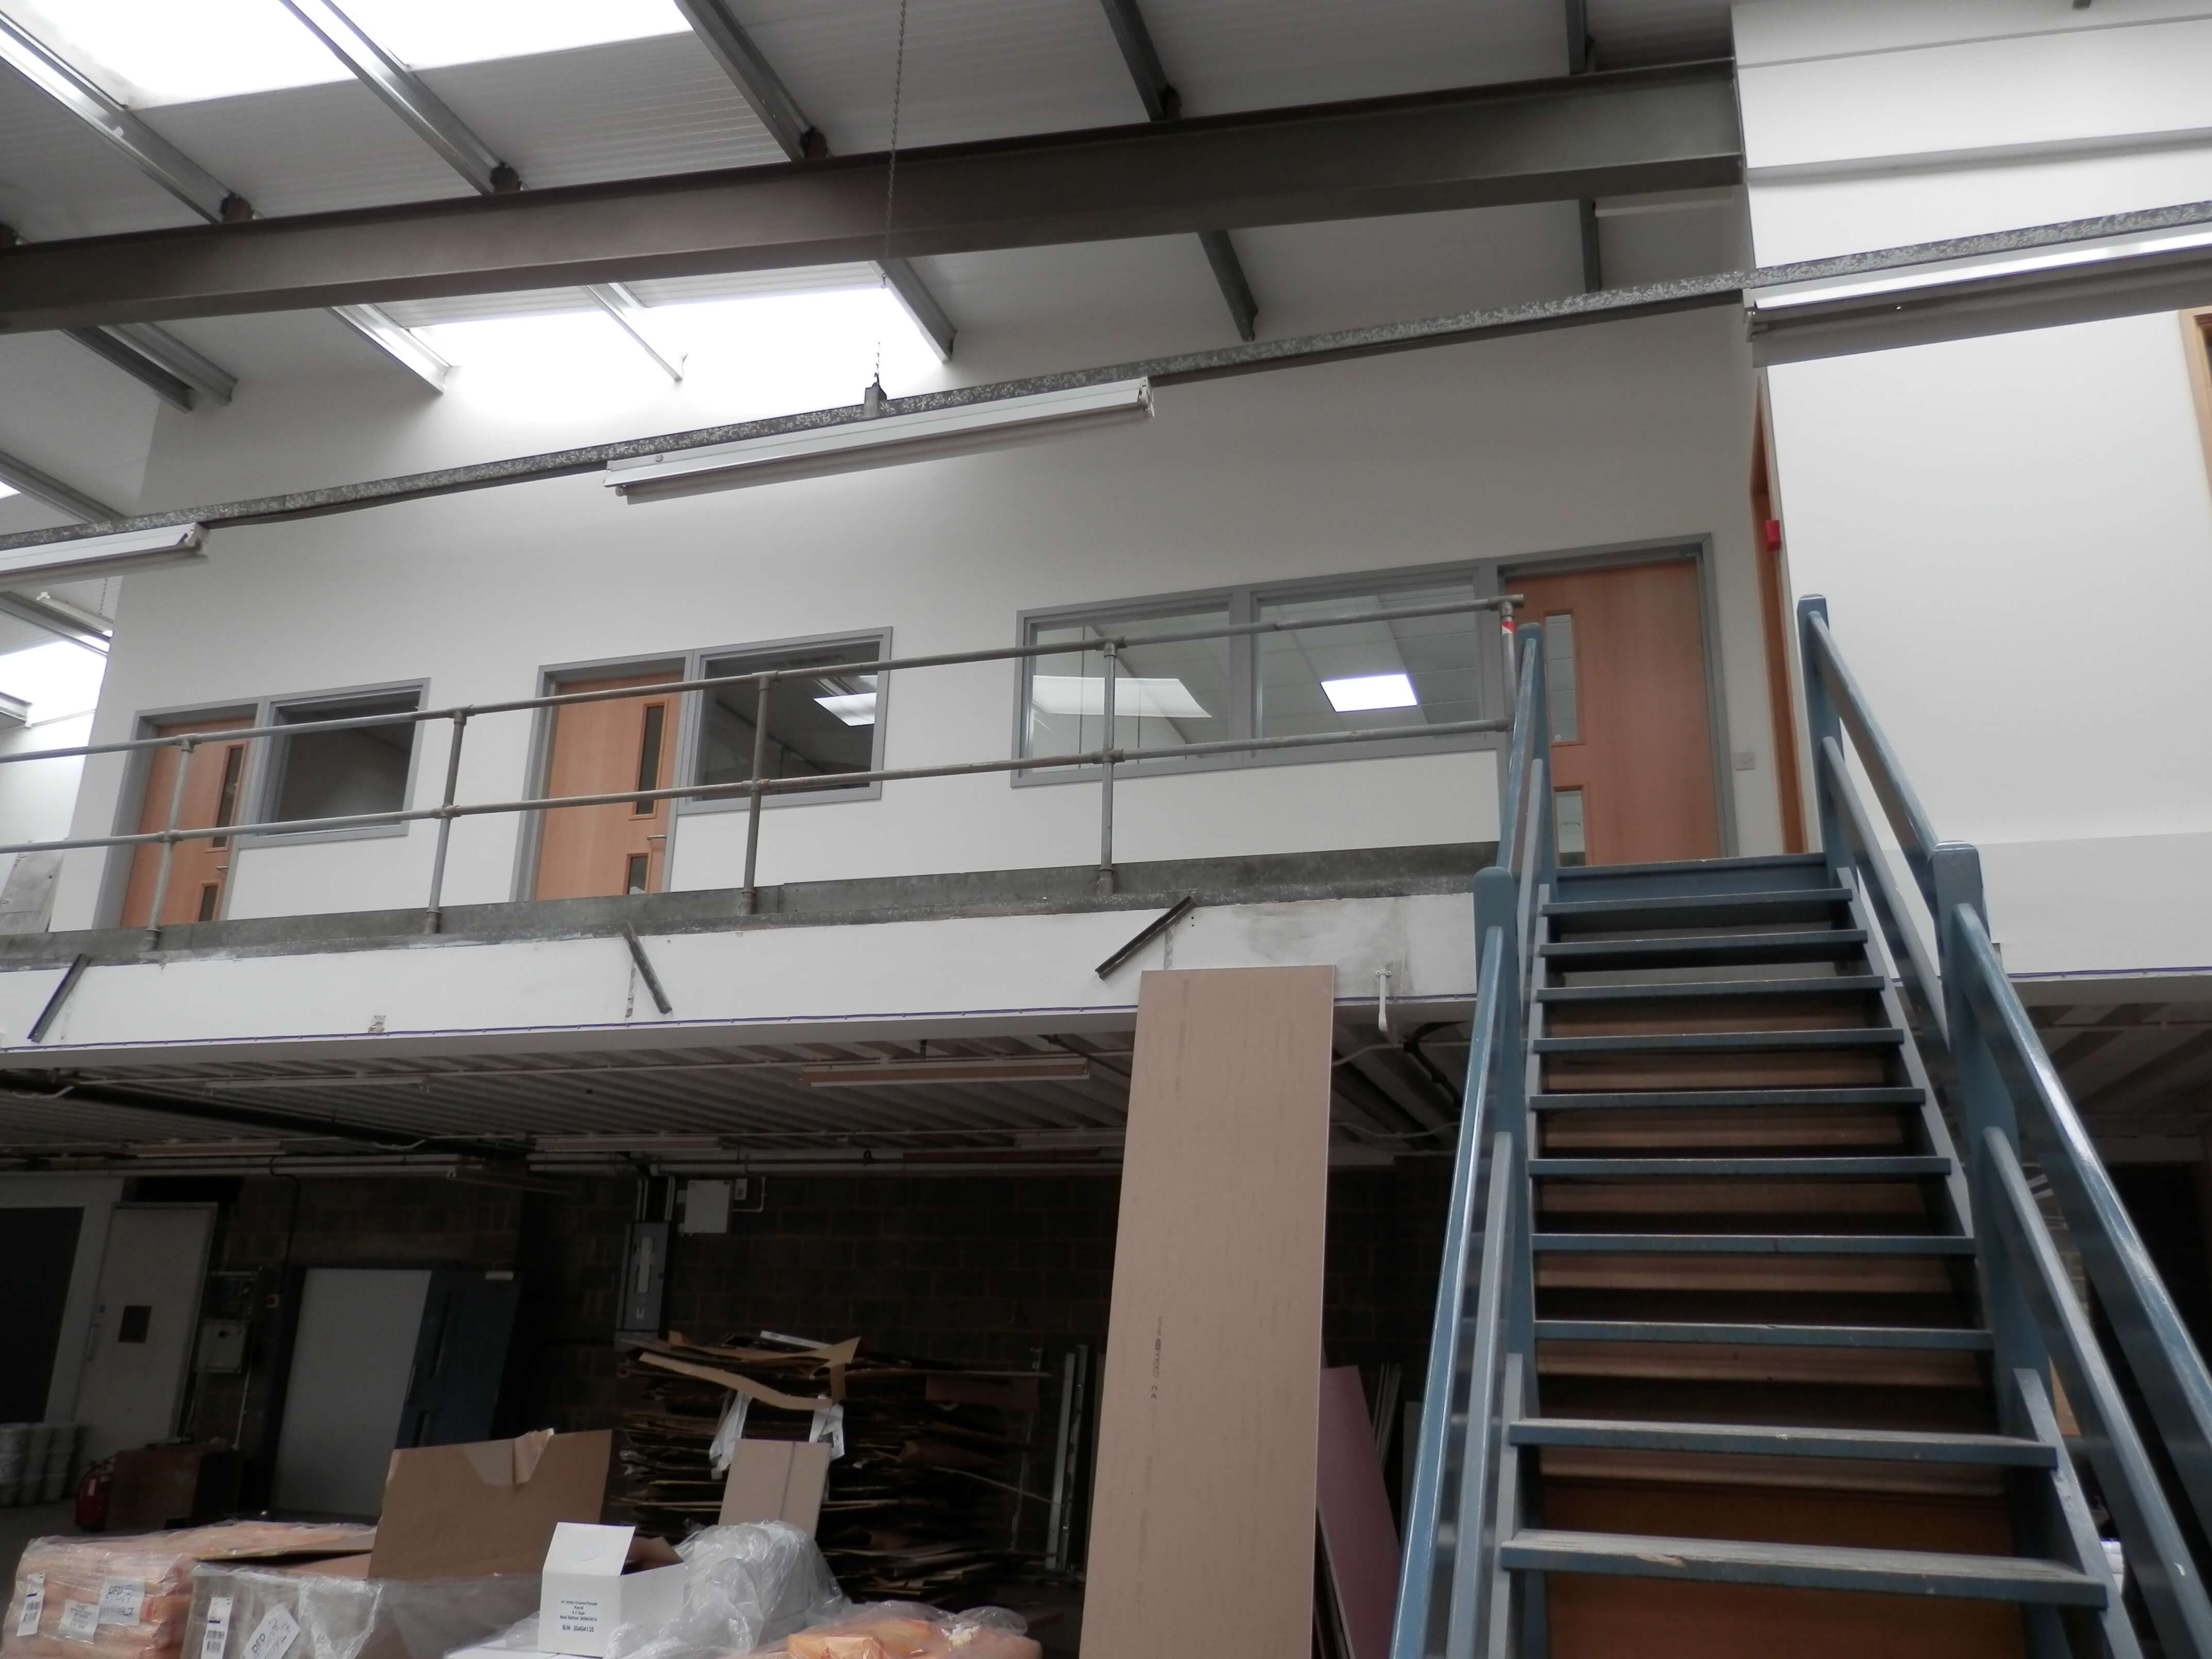 Office fit out in Melksham for Coombe Castle